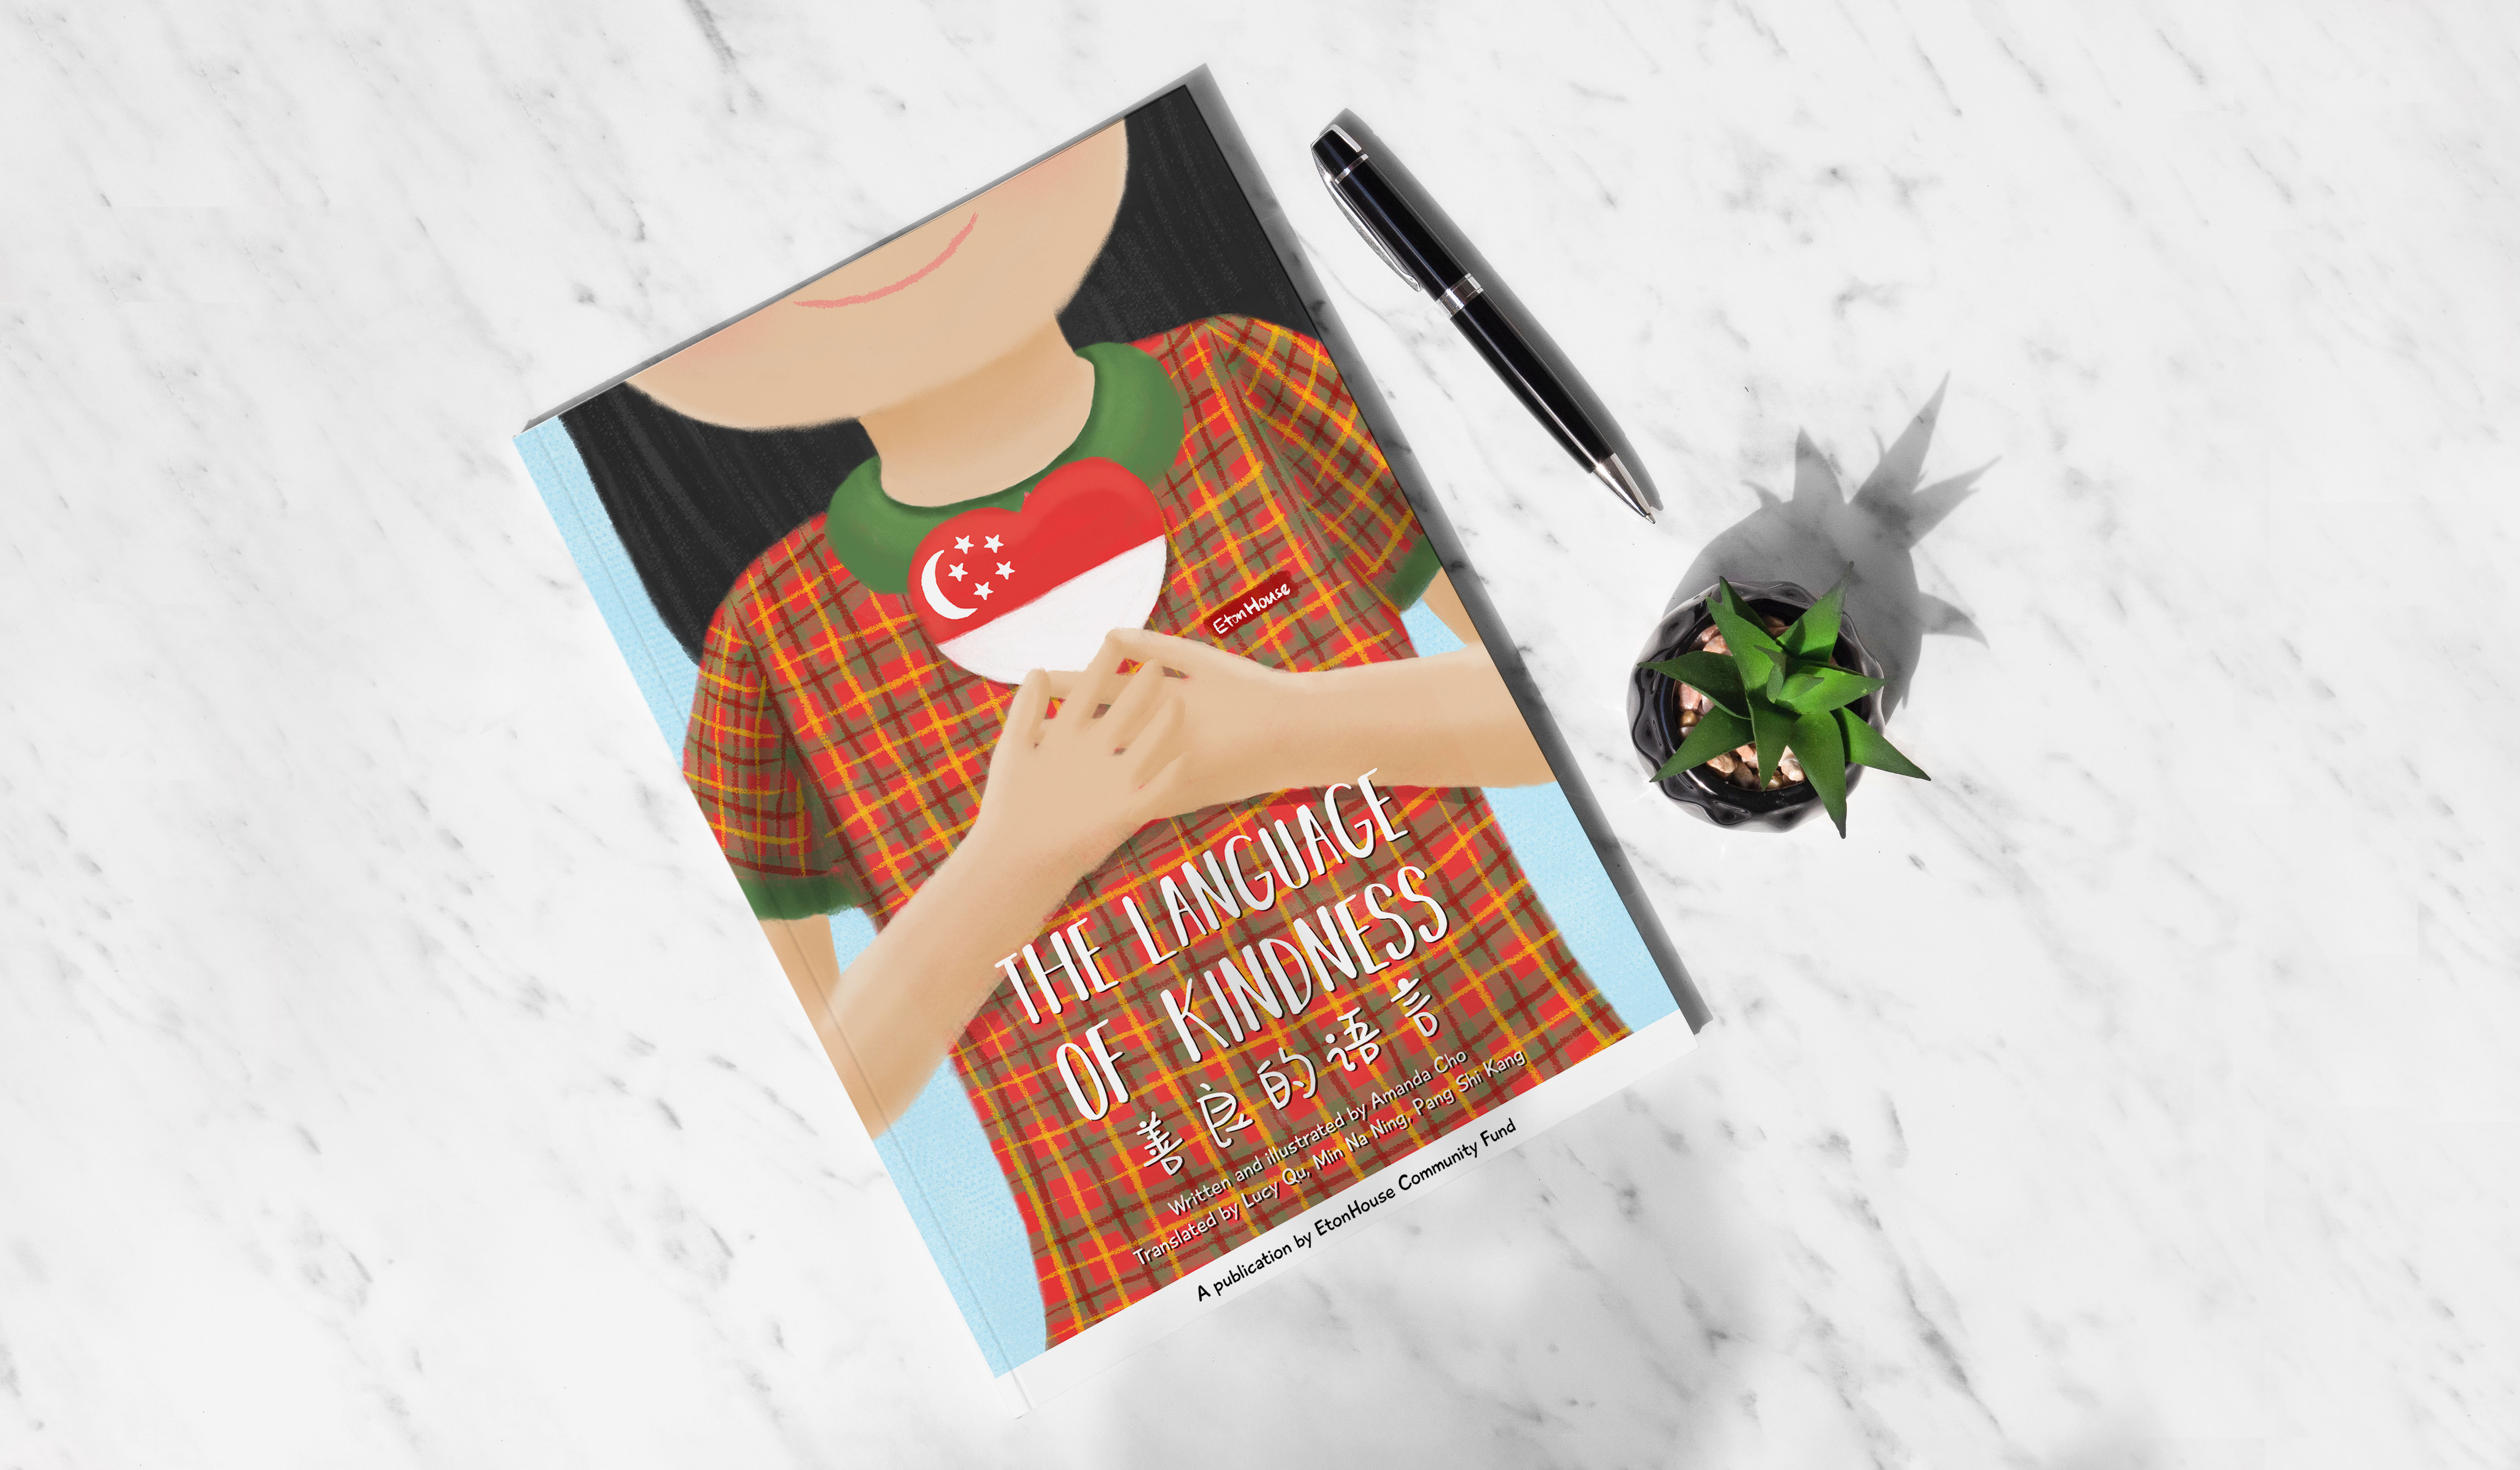 KindnessEbookFeatured